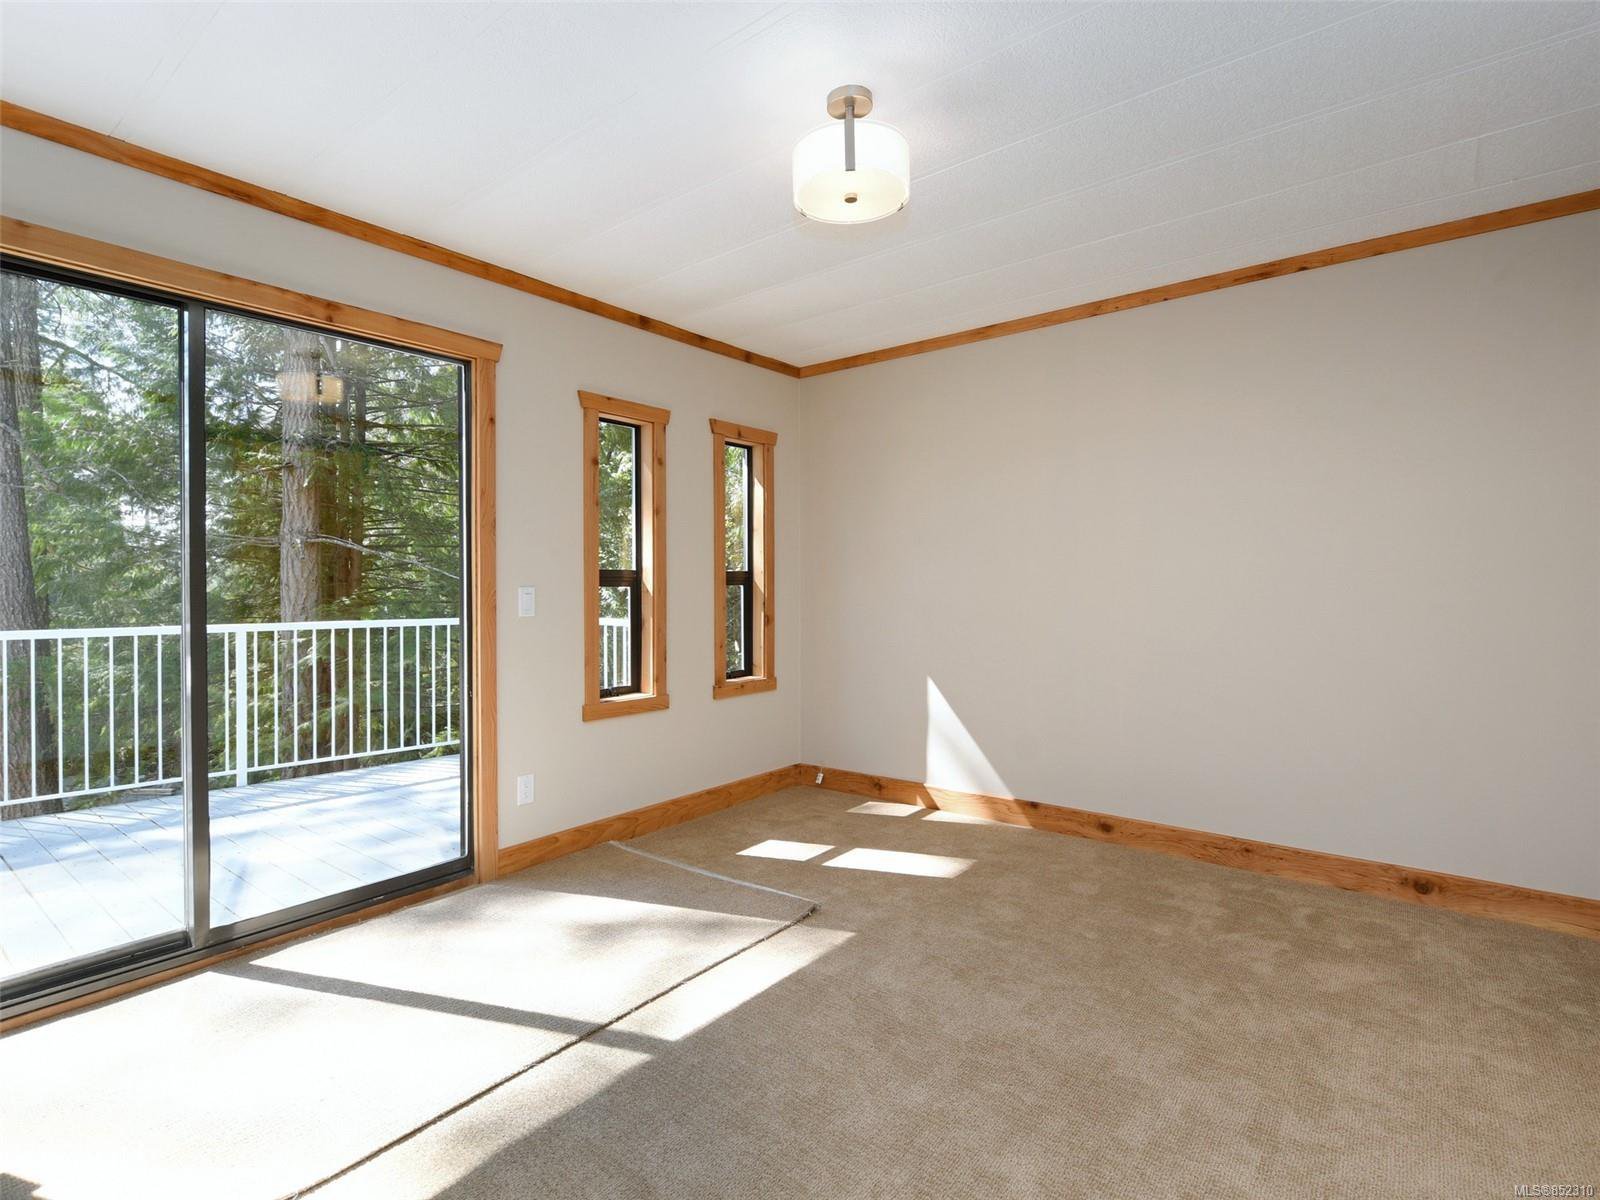 Photo 11: Photos: 94 5838 Blythwood Rd in : Sk Saseenos Manufactured Home for sale (Sooke)  : MLS®# 852310